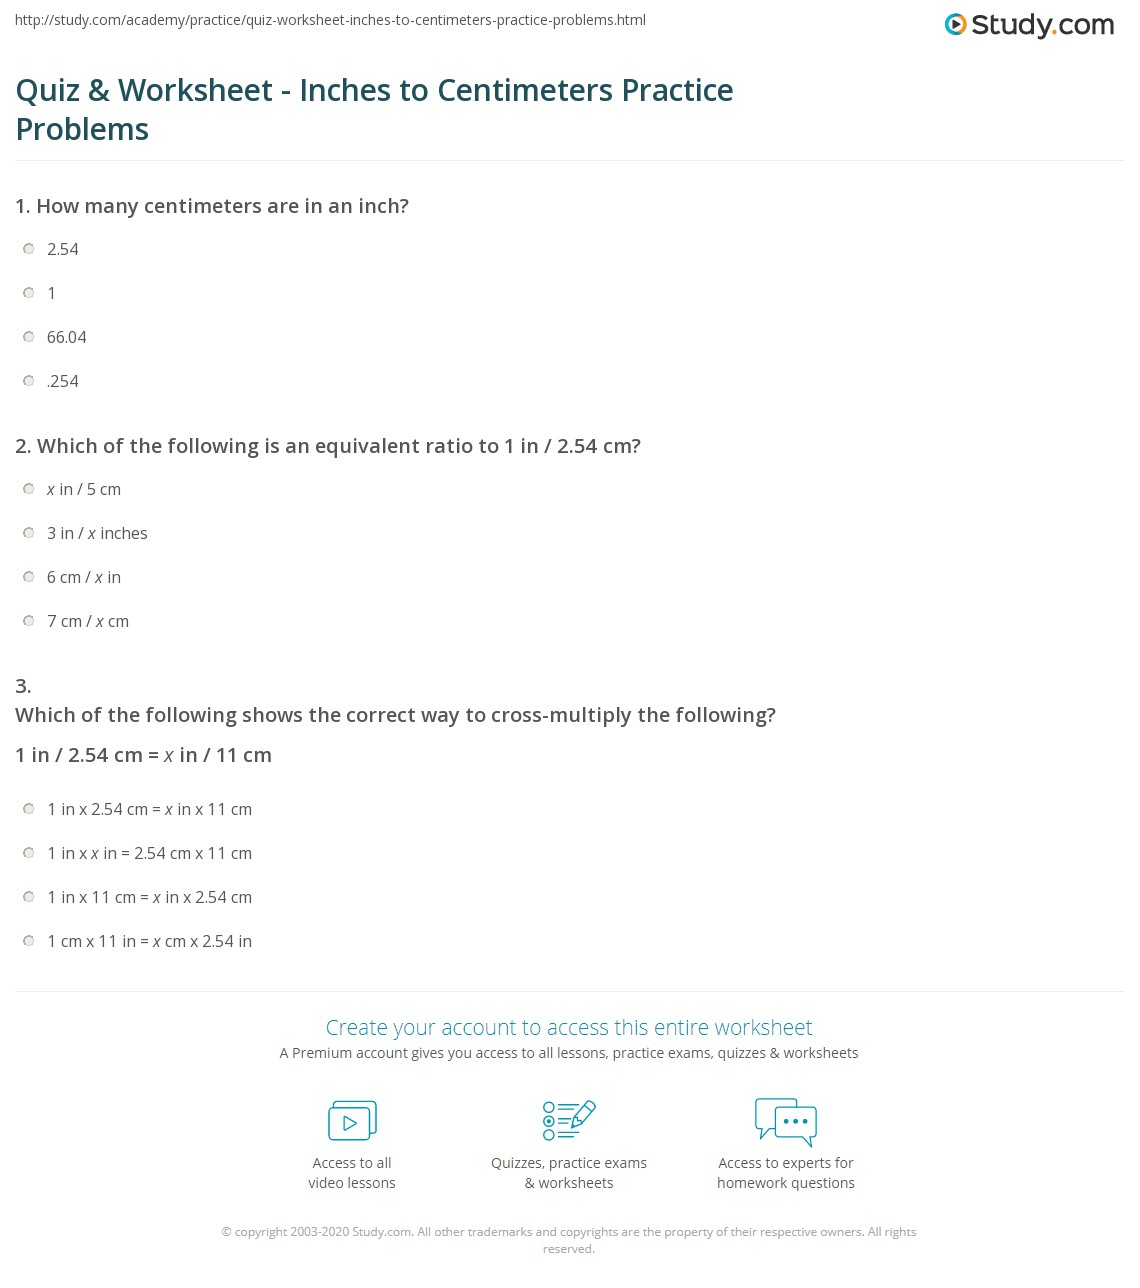 Ich Cm Quiz & Worksheet - Inches To Centimeters Practice Problems | Study.com